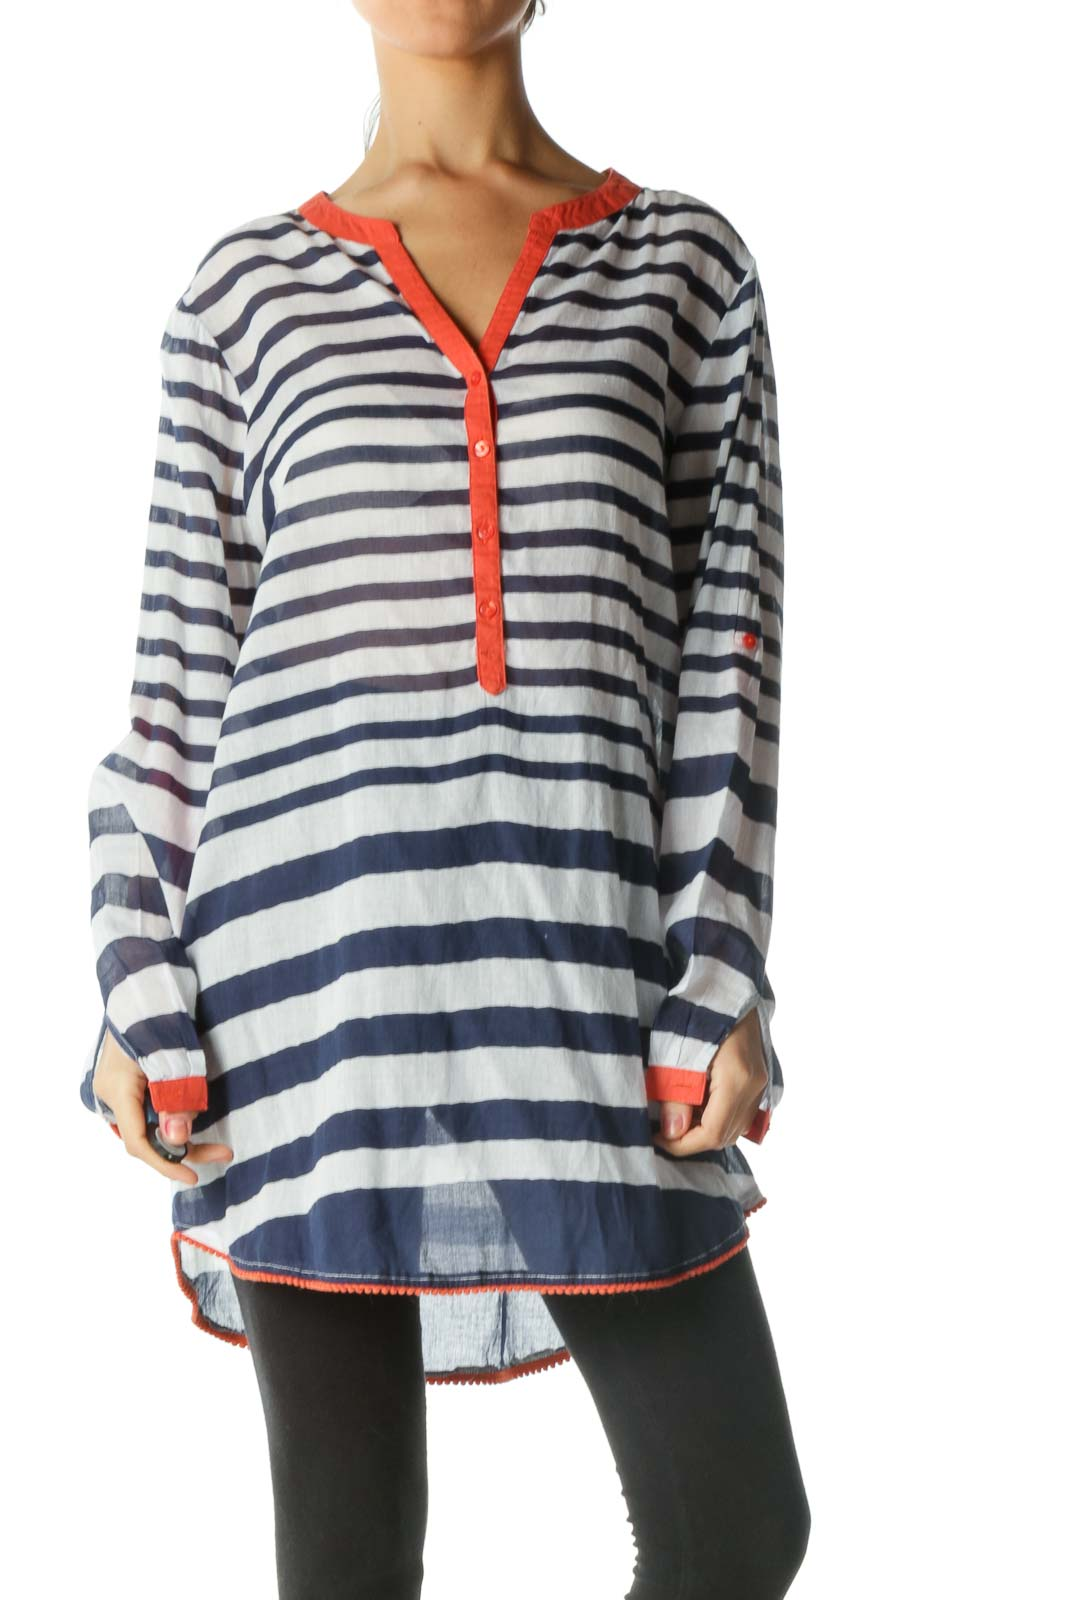 Blue and White Striped Sheer Long Sleeve Shirt